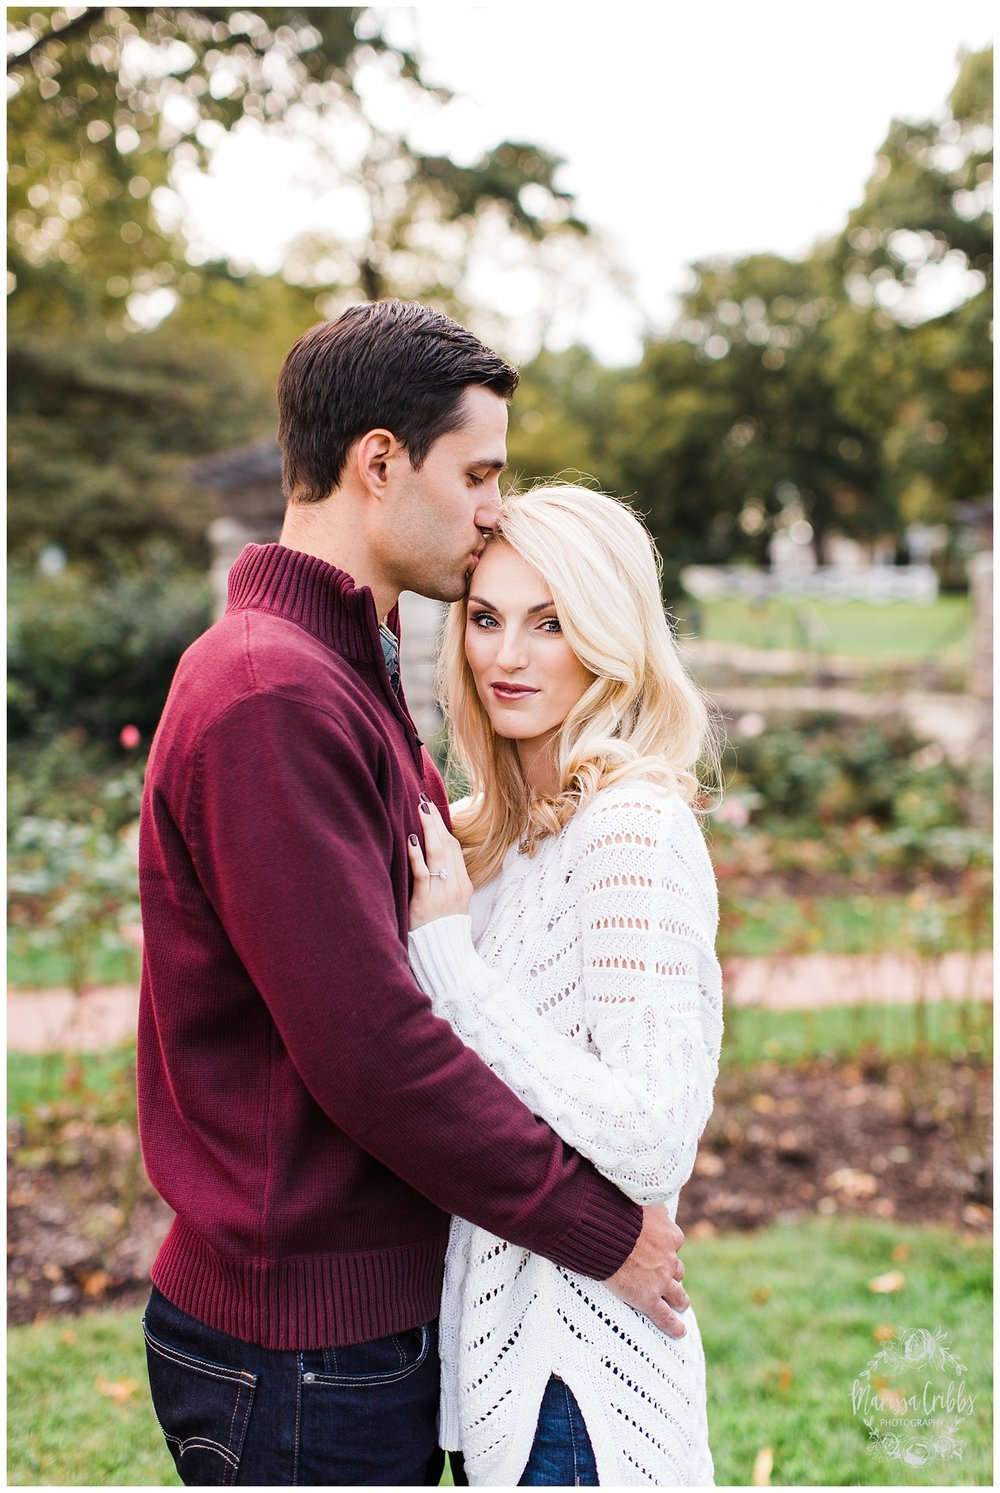 CLOE & GABE LIBERTY MEMORIAL ENGAGEMENT | MARISSA CRIBBS PHOTOGRAPHY | LOOSE PARK ENGAGEMENT_3444.jpg